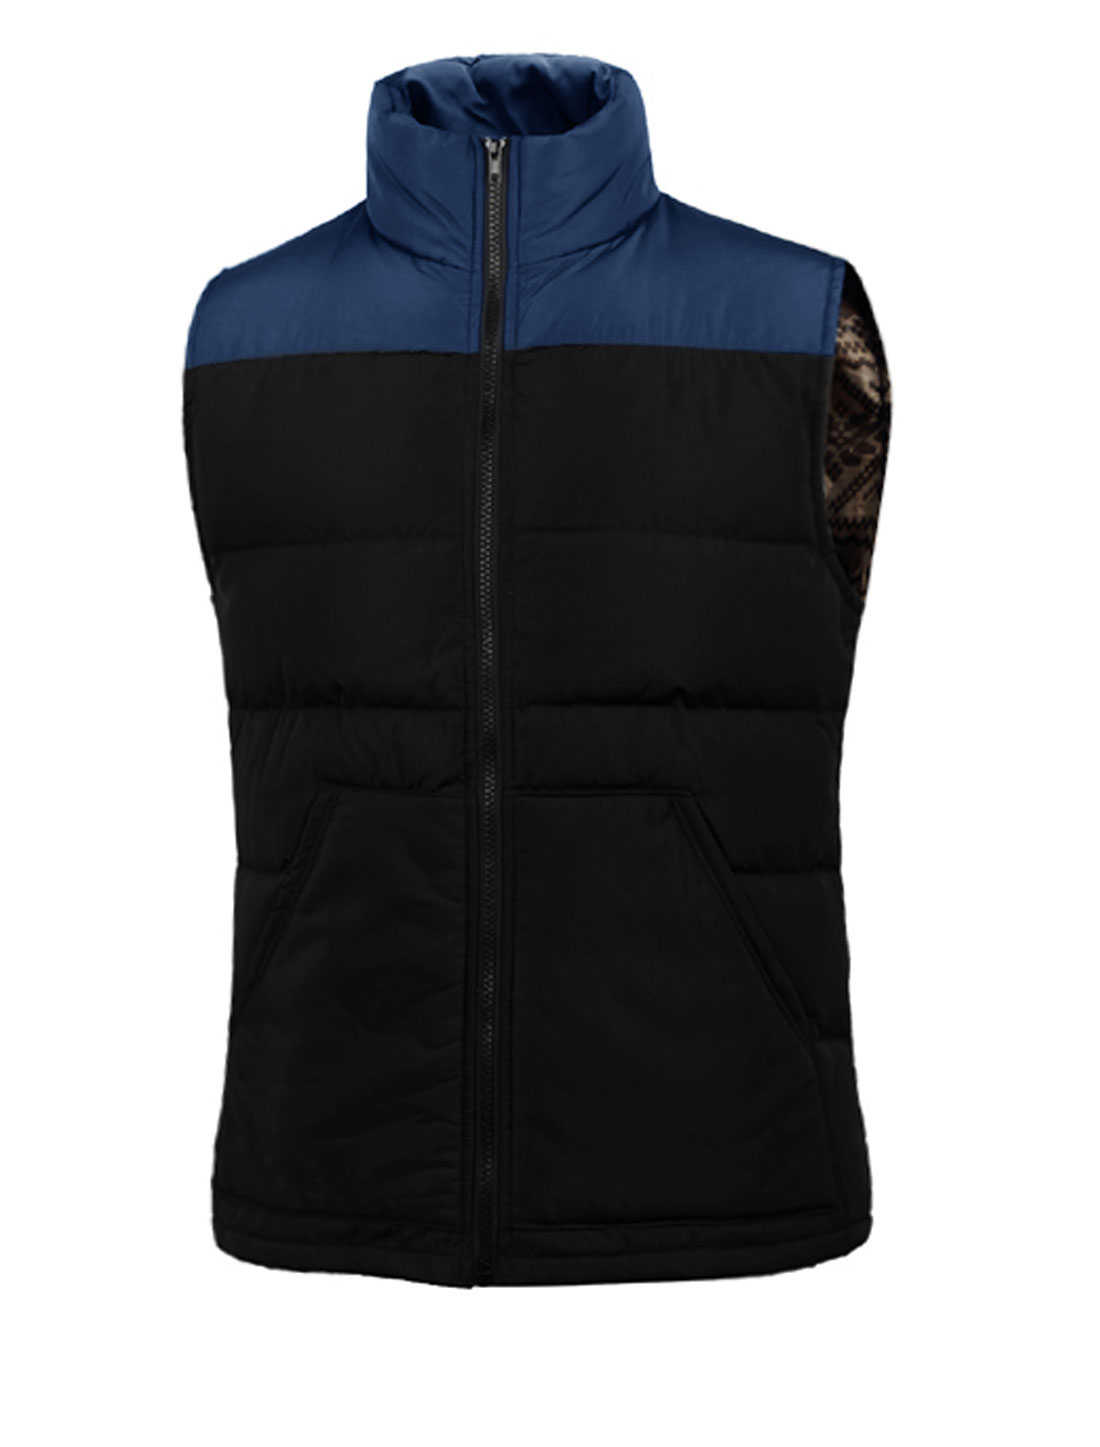 Stand Collar Contrast Color Leisure Padded Vest for Men Navy Blue Black M